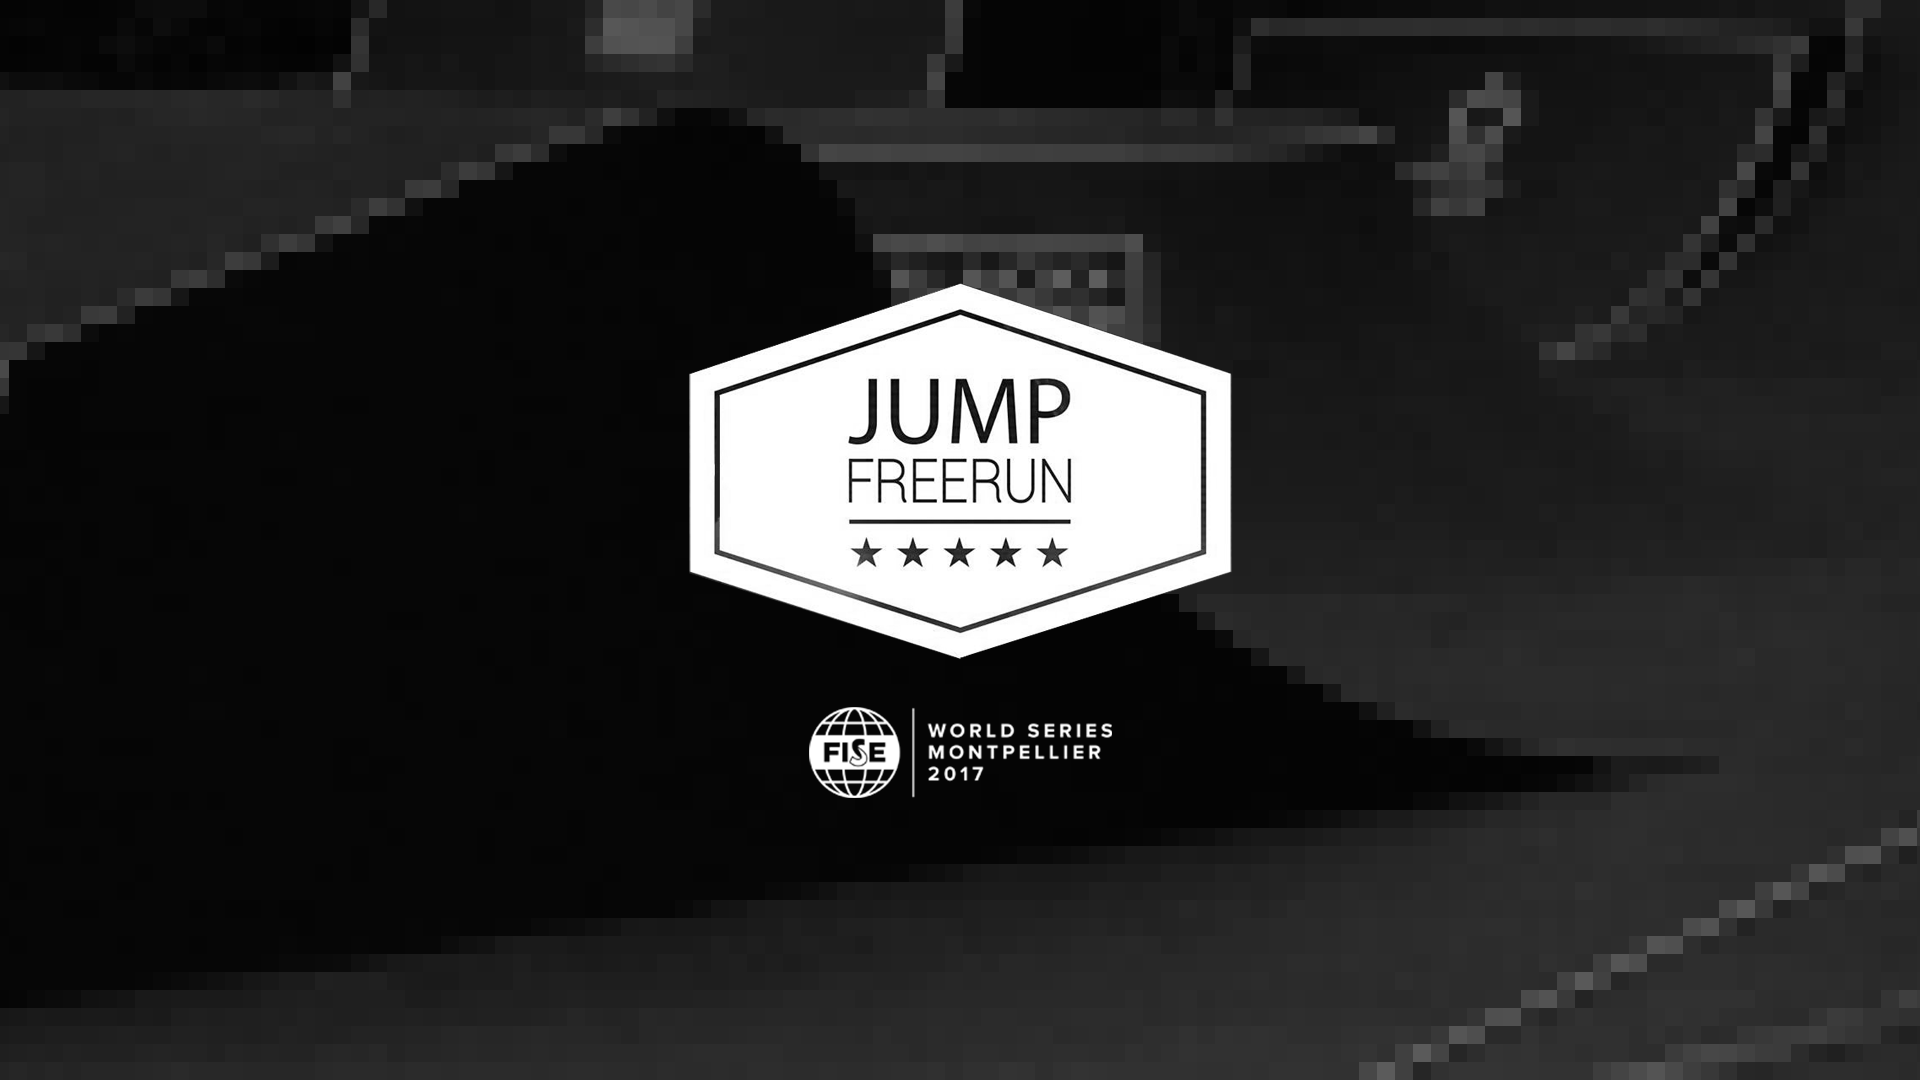 JUMP Freerun Has 'No Involvement with FIG'